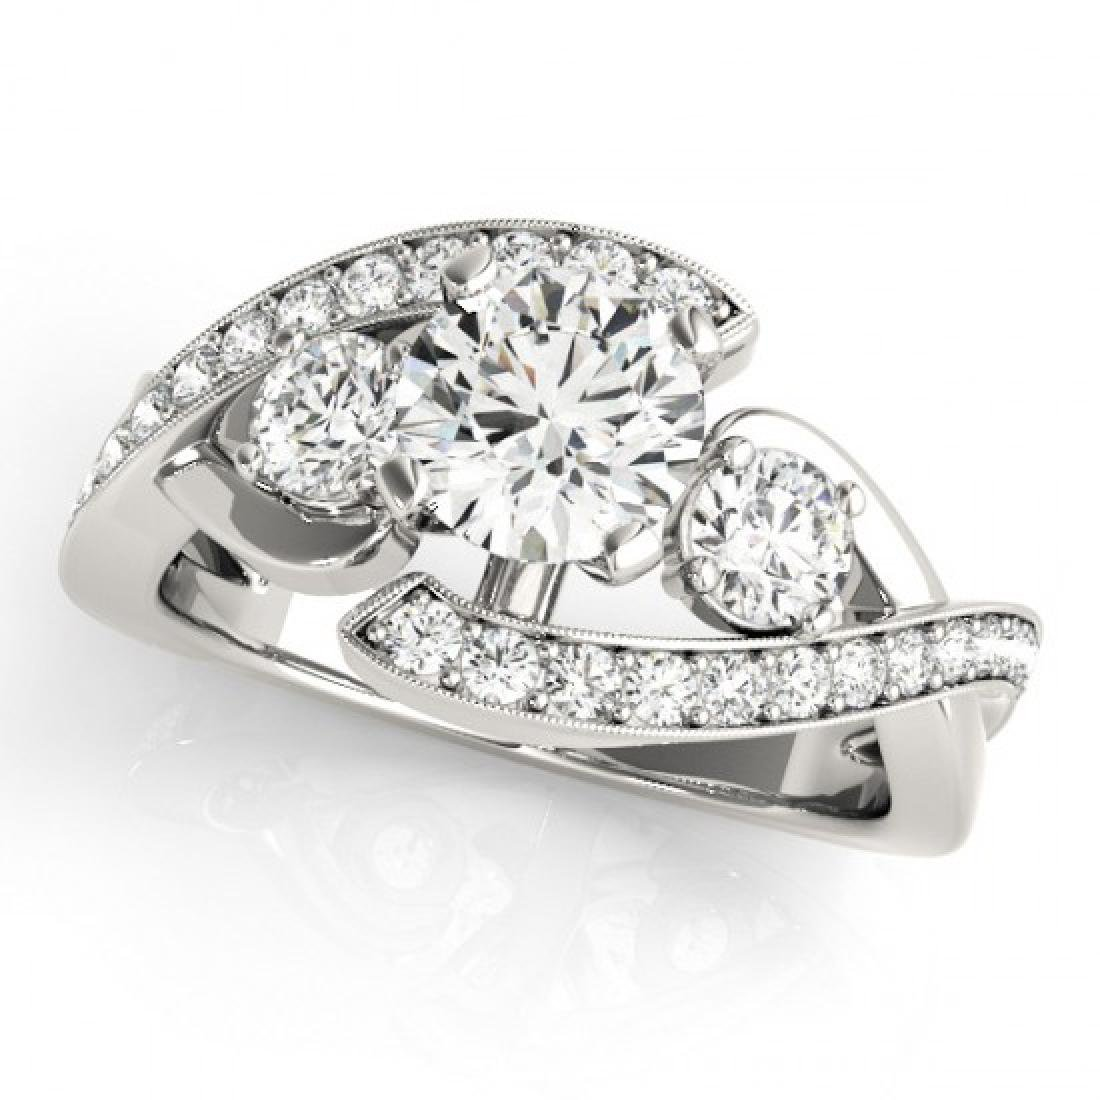 2.01 CTW Certified VS/SI Diamond Bypass Solitaire Ring